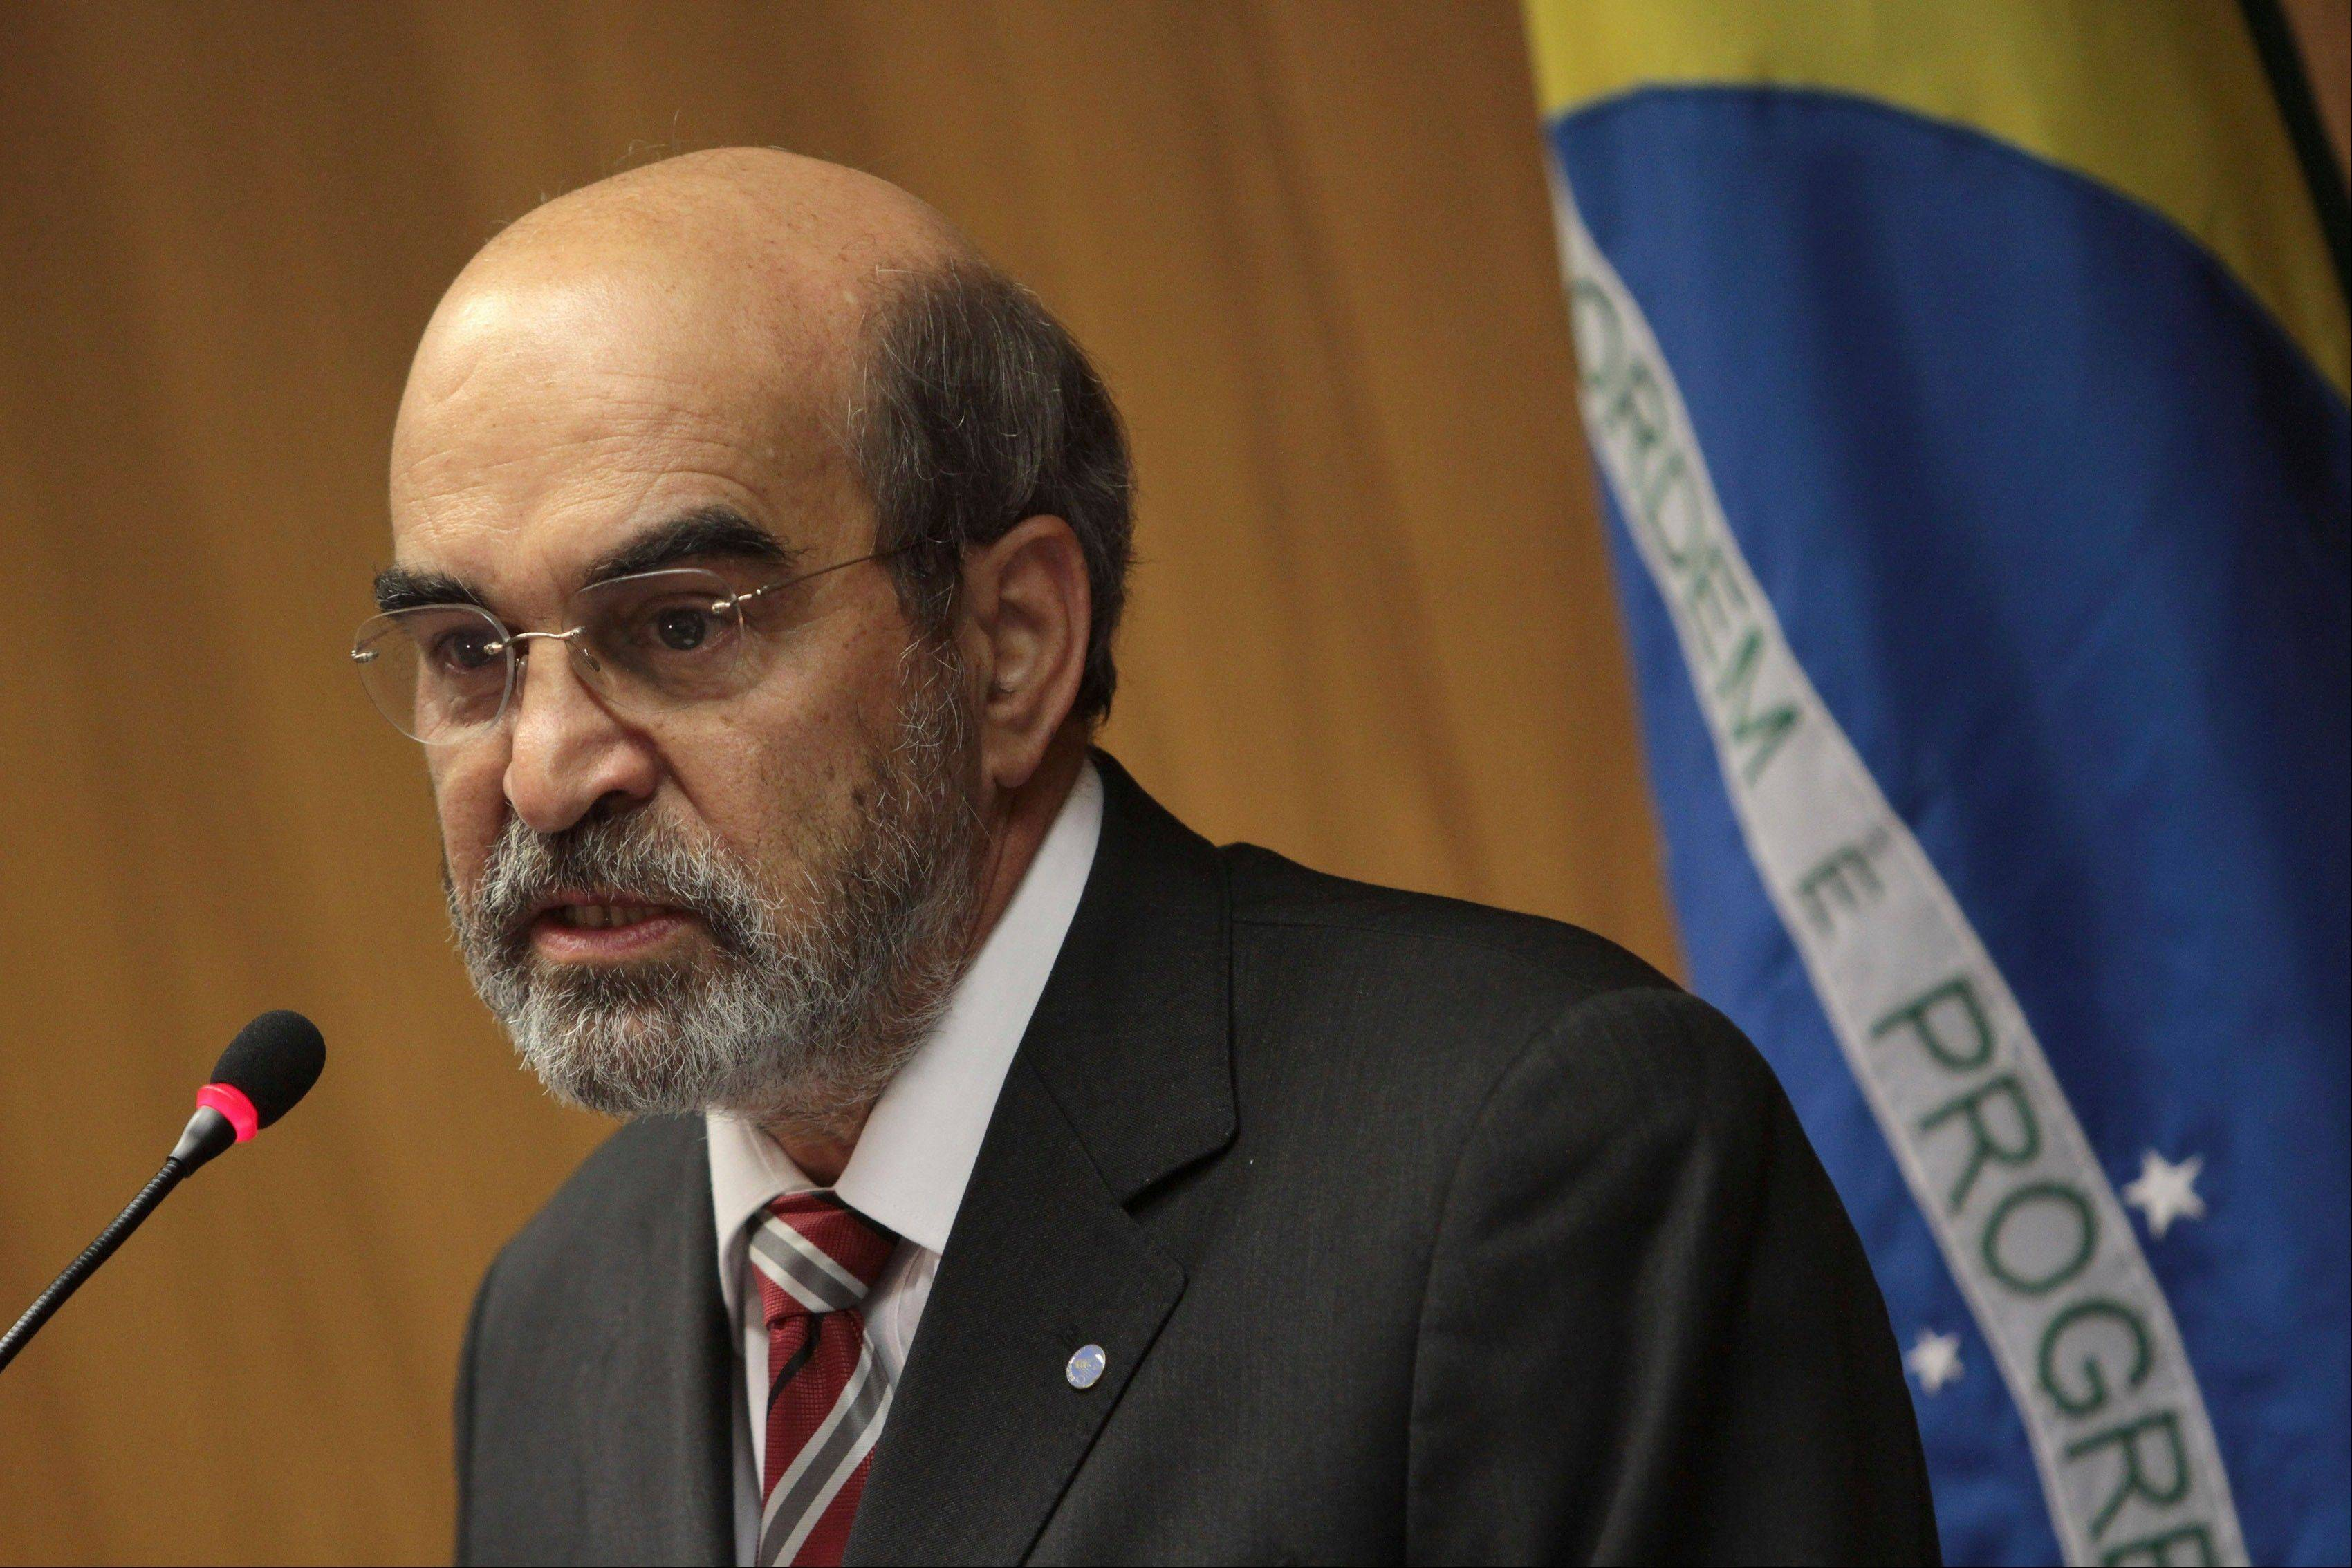 Jose Graziano da Silva is one of the creators of Brazil�s �Zero Hunger� social programs, which include giving money directly to poor households. That idea may now get a global tryout as world food prices spike, economies everywhere sputter and a horrific famine desolates East Africa.